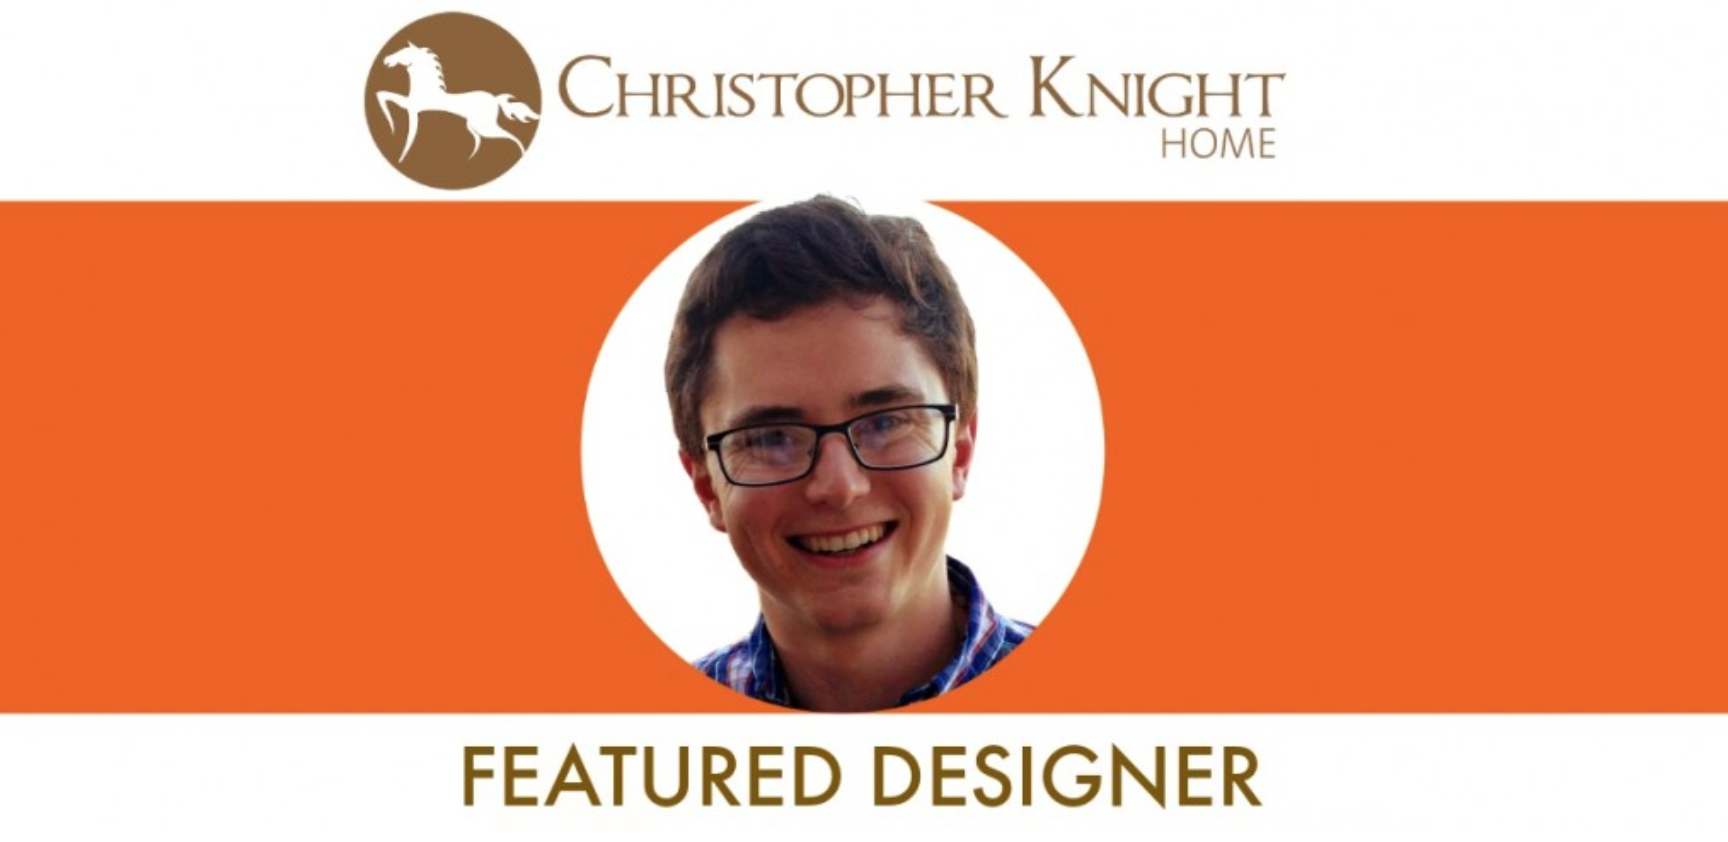 Robby Cuthbert, featured designer on Christopher Knight Home.